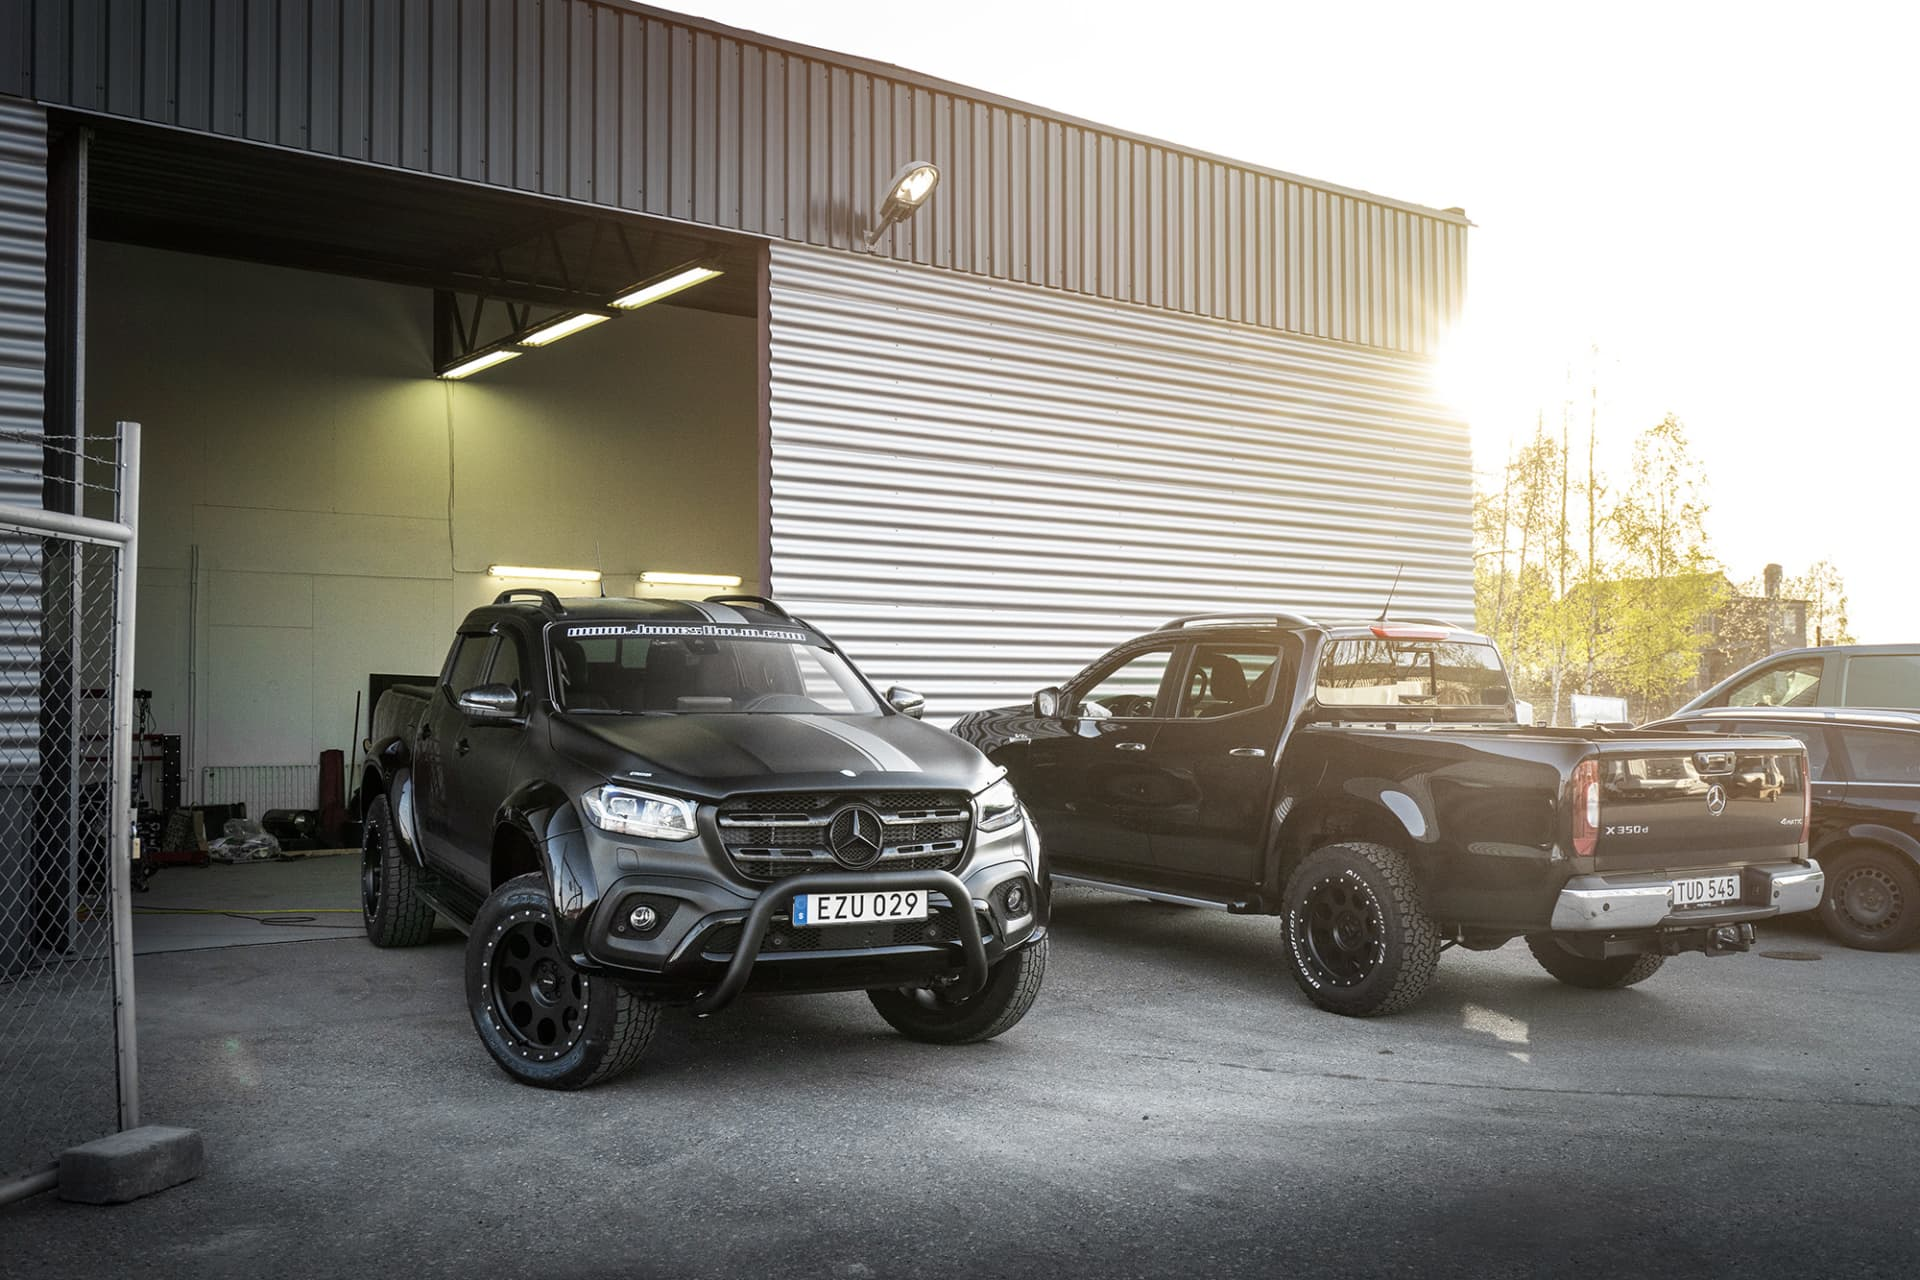 From a standard X-Class to something completely different, and incredibly cool in my opinion. That's the result you get when you work with the right people and products.